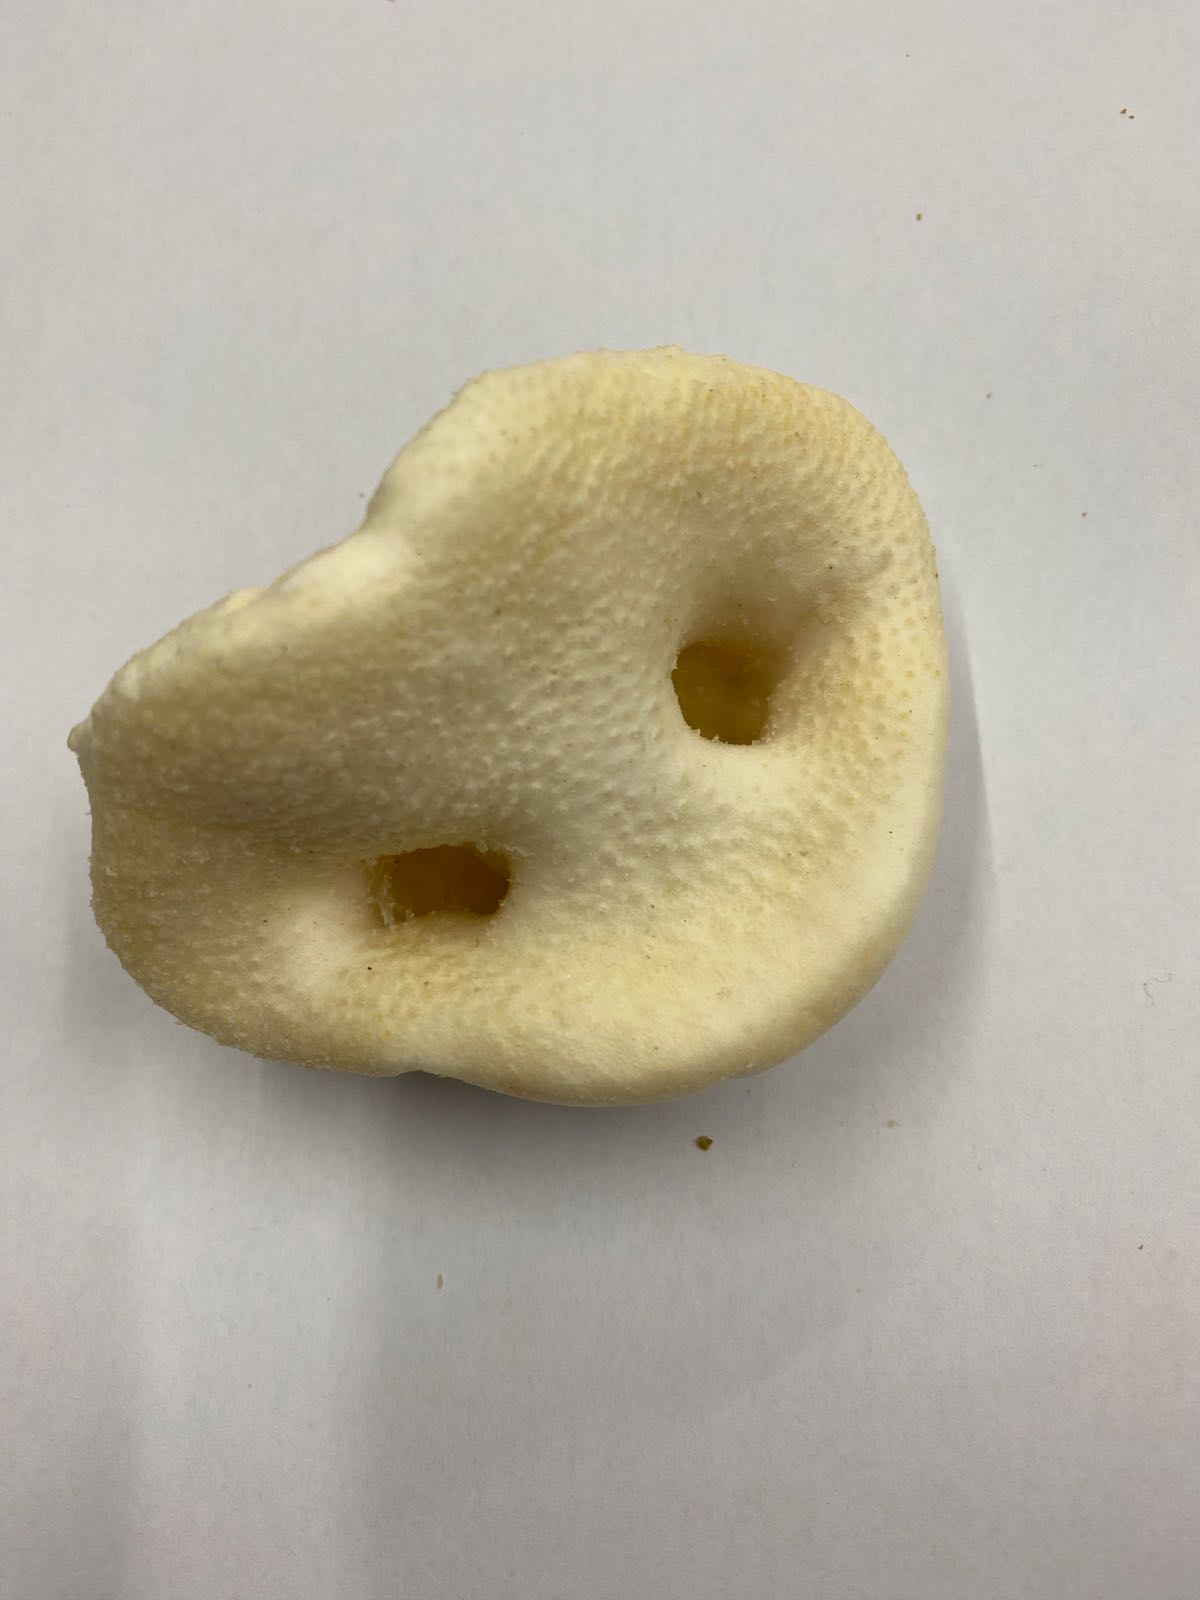 Pig Snout Puffed White